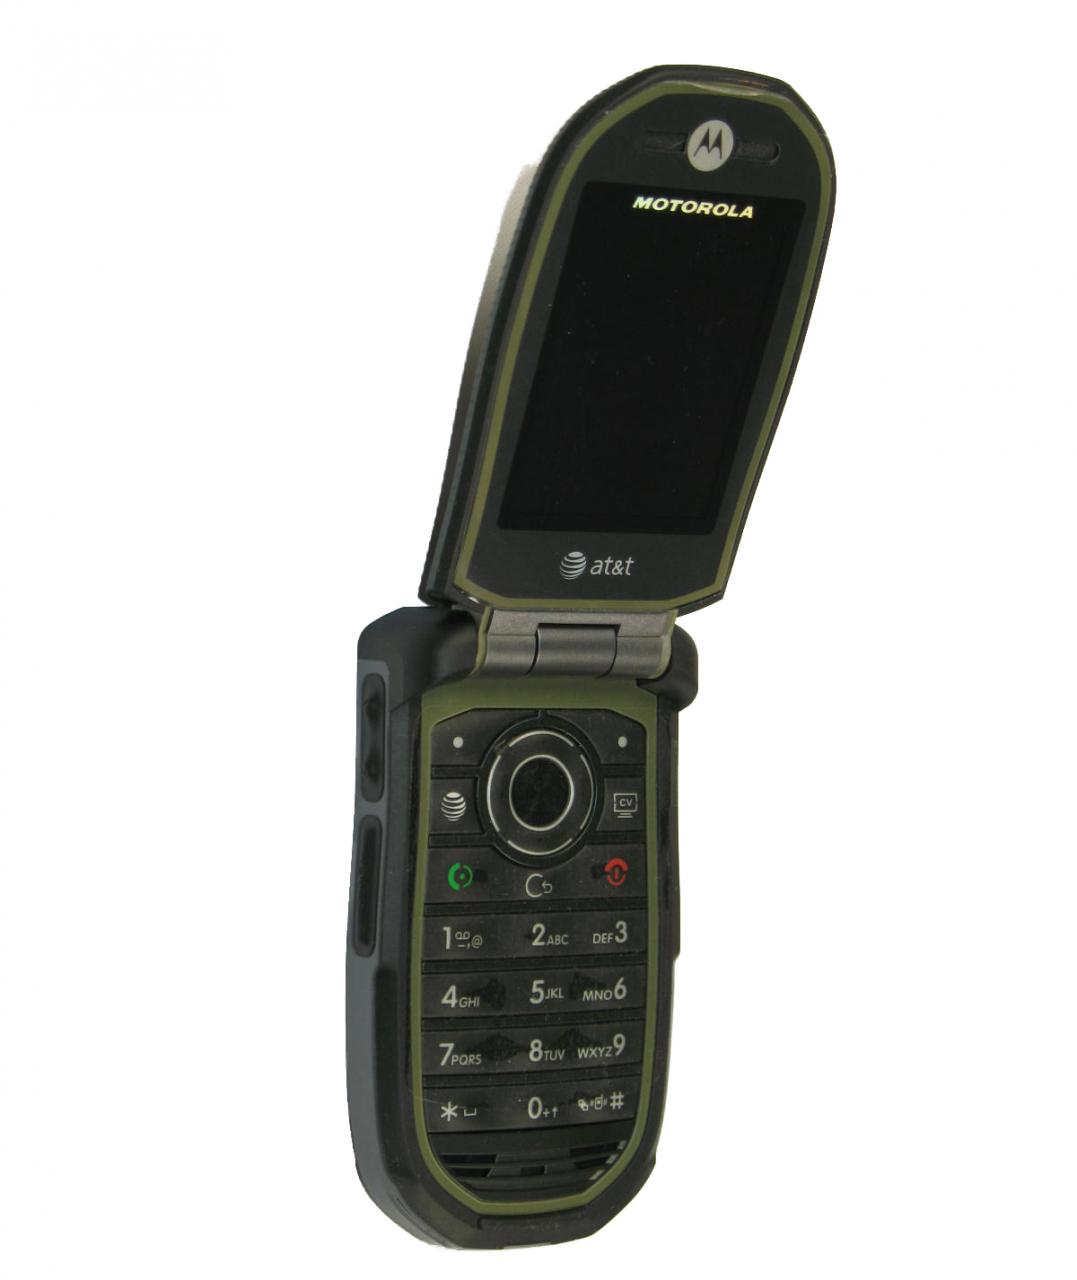 New motorola tundra va76r rugged cell phone images for Rugged cell phones